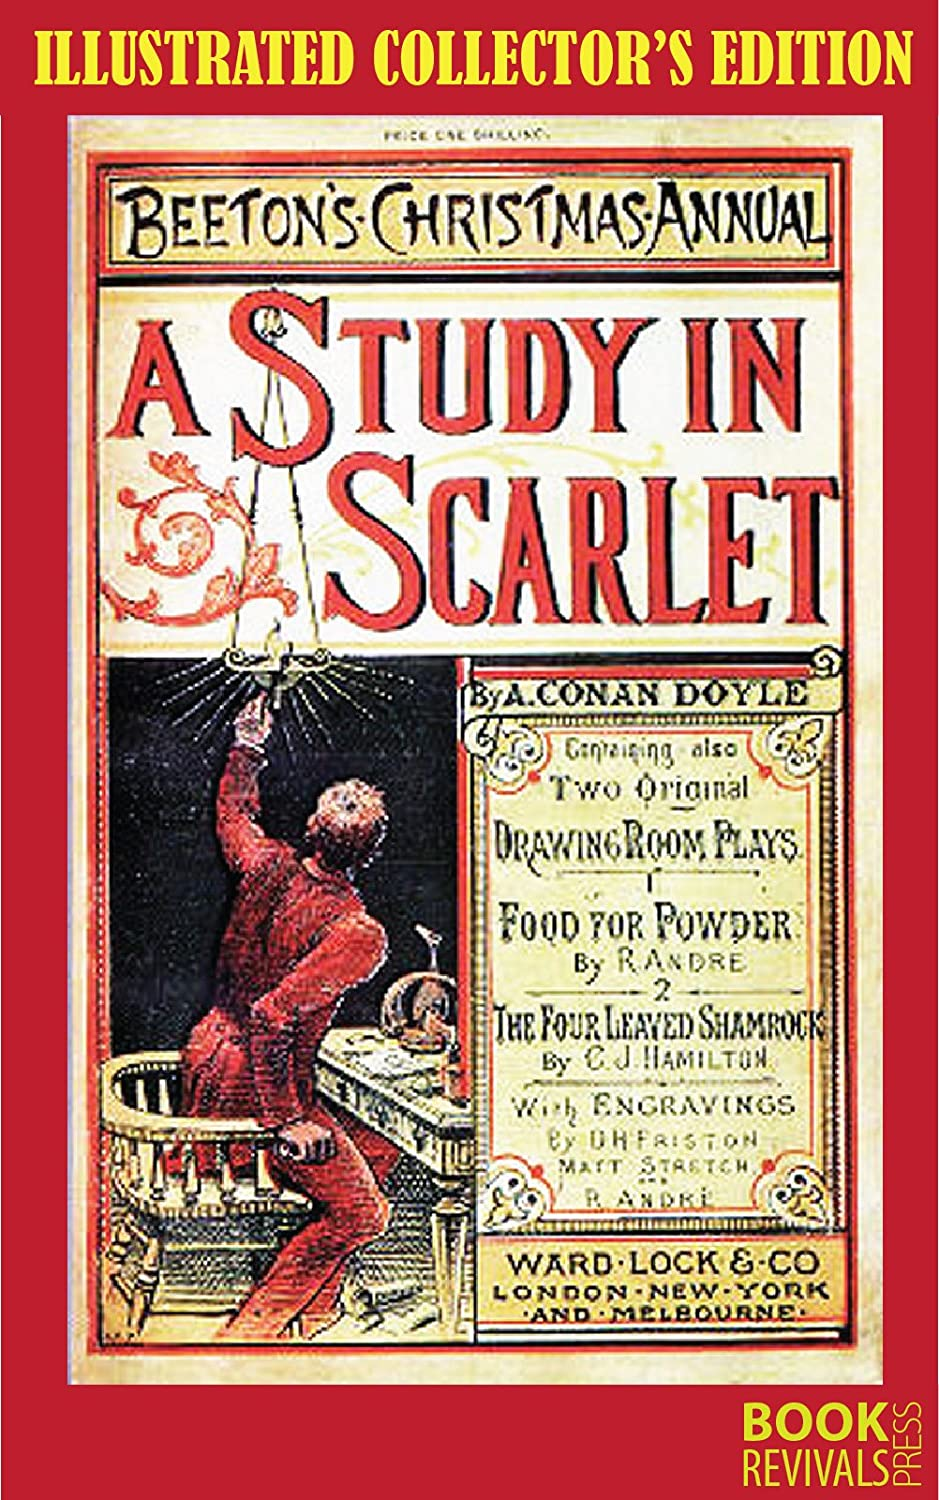 A 'Study in Scarlet' : The use of narrative form | Emily J ...